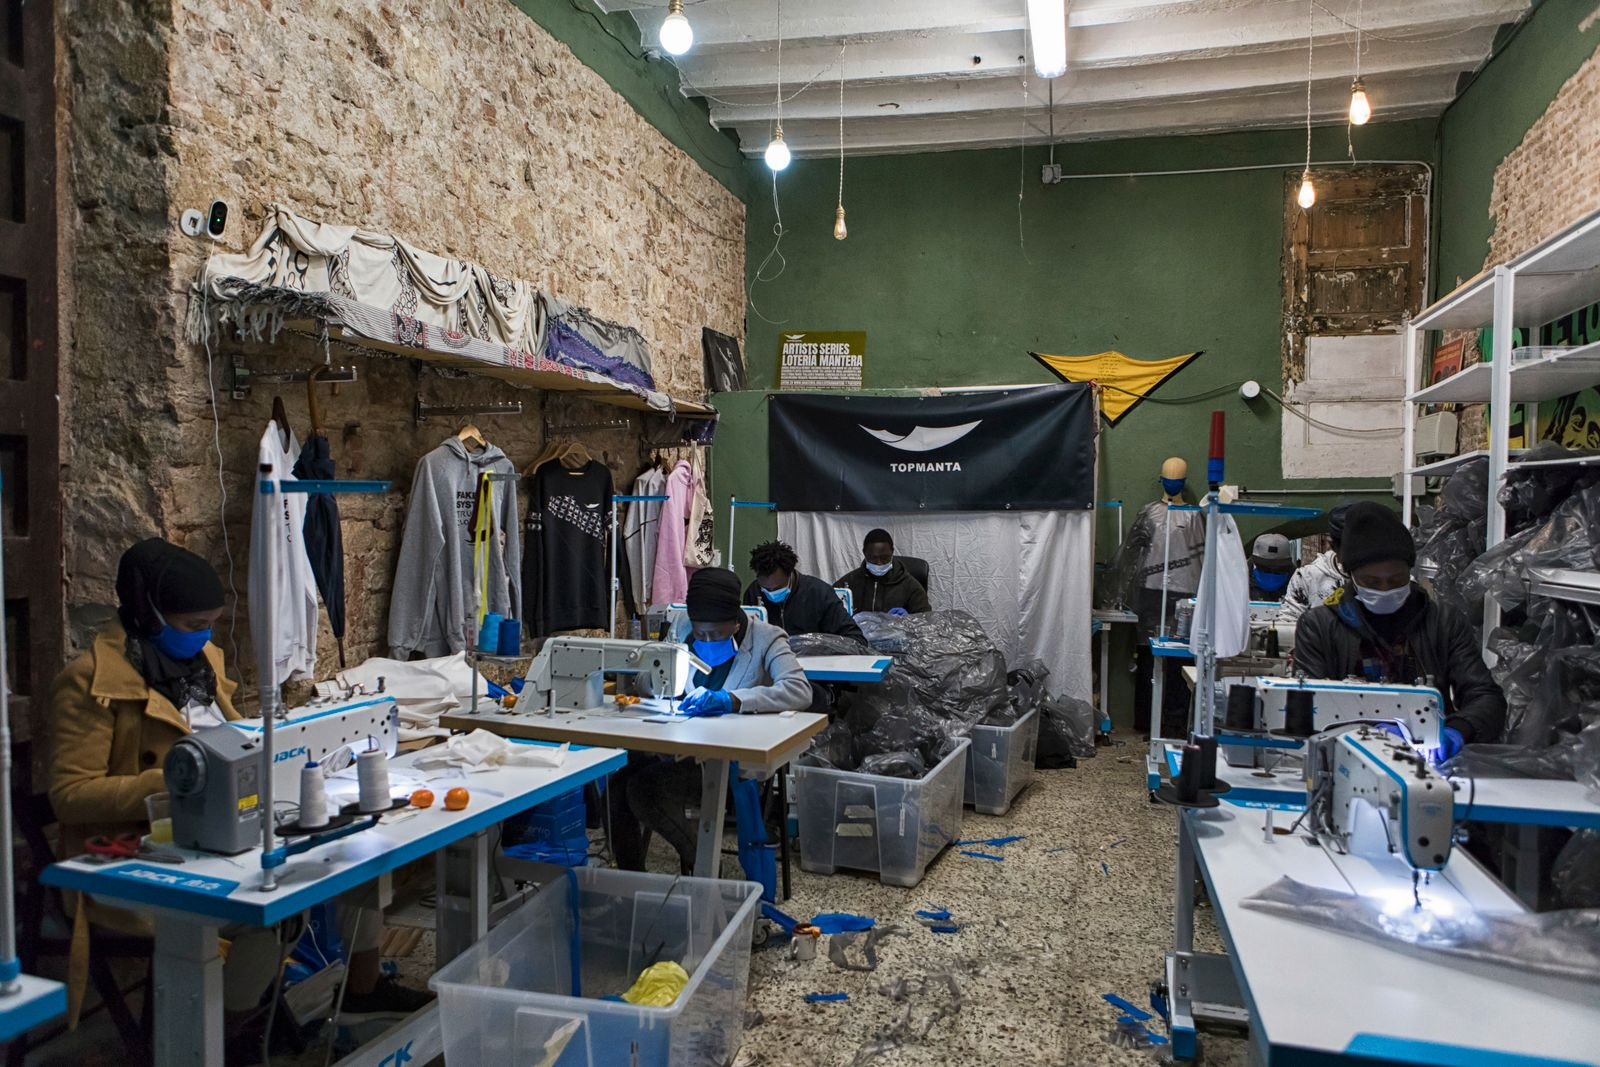 Members of the Sindicato de Manteros make gowns for medical